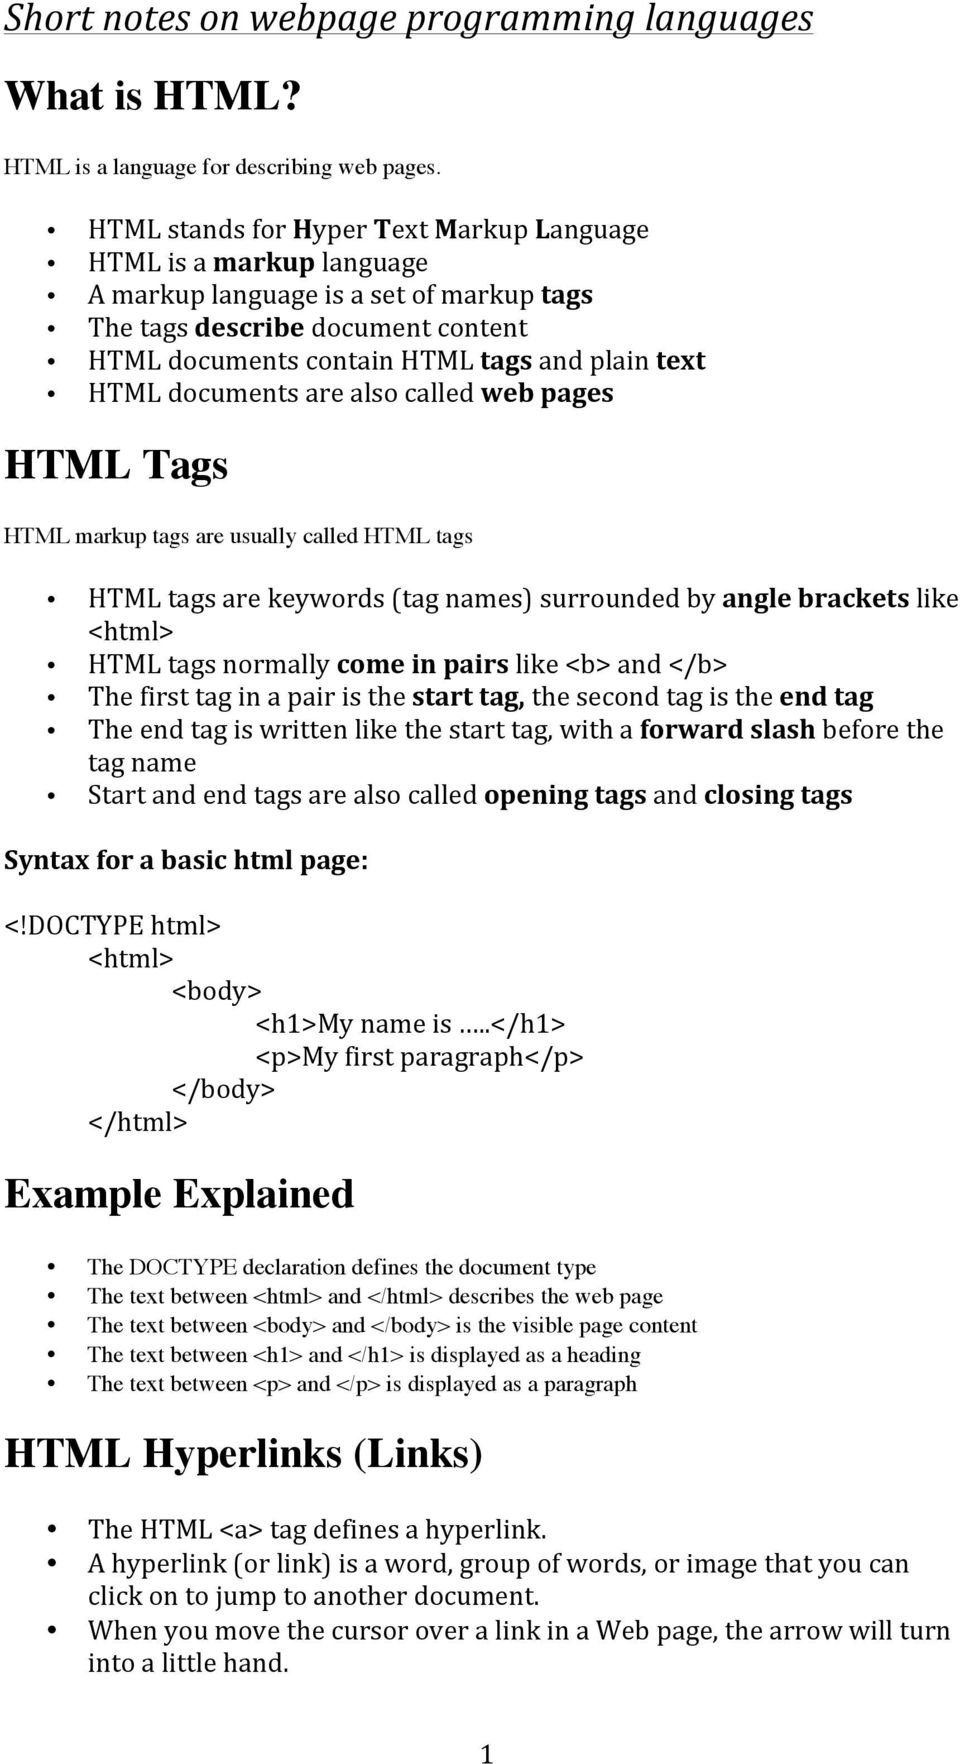 documents are also called web pages HTML Tags HTML markup tags are usually called HTML tags HTML tags are keywords (tag names) surrounded by angle brackets like <html> HTML tags normally come in